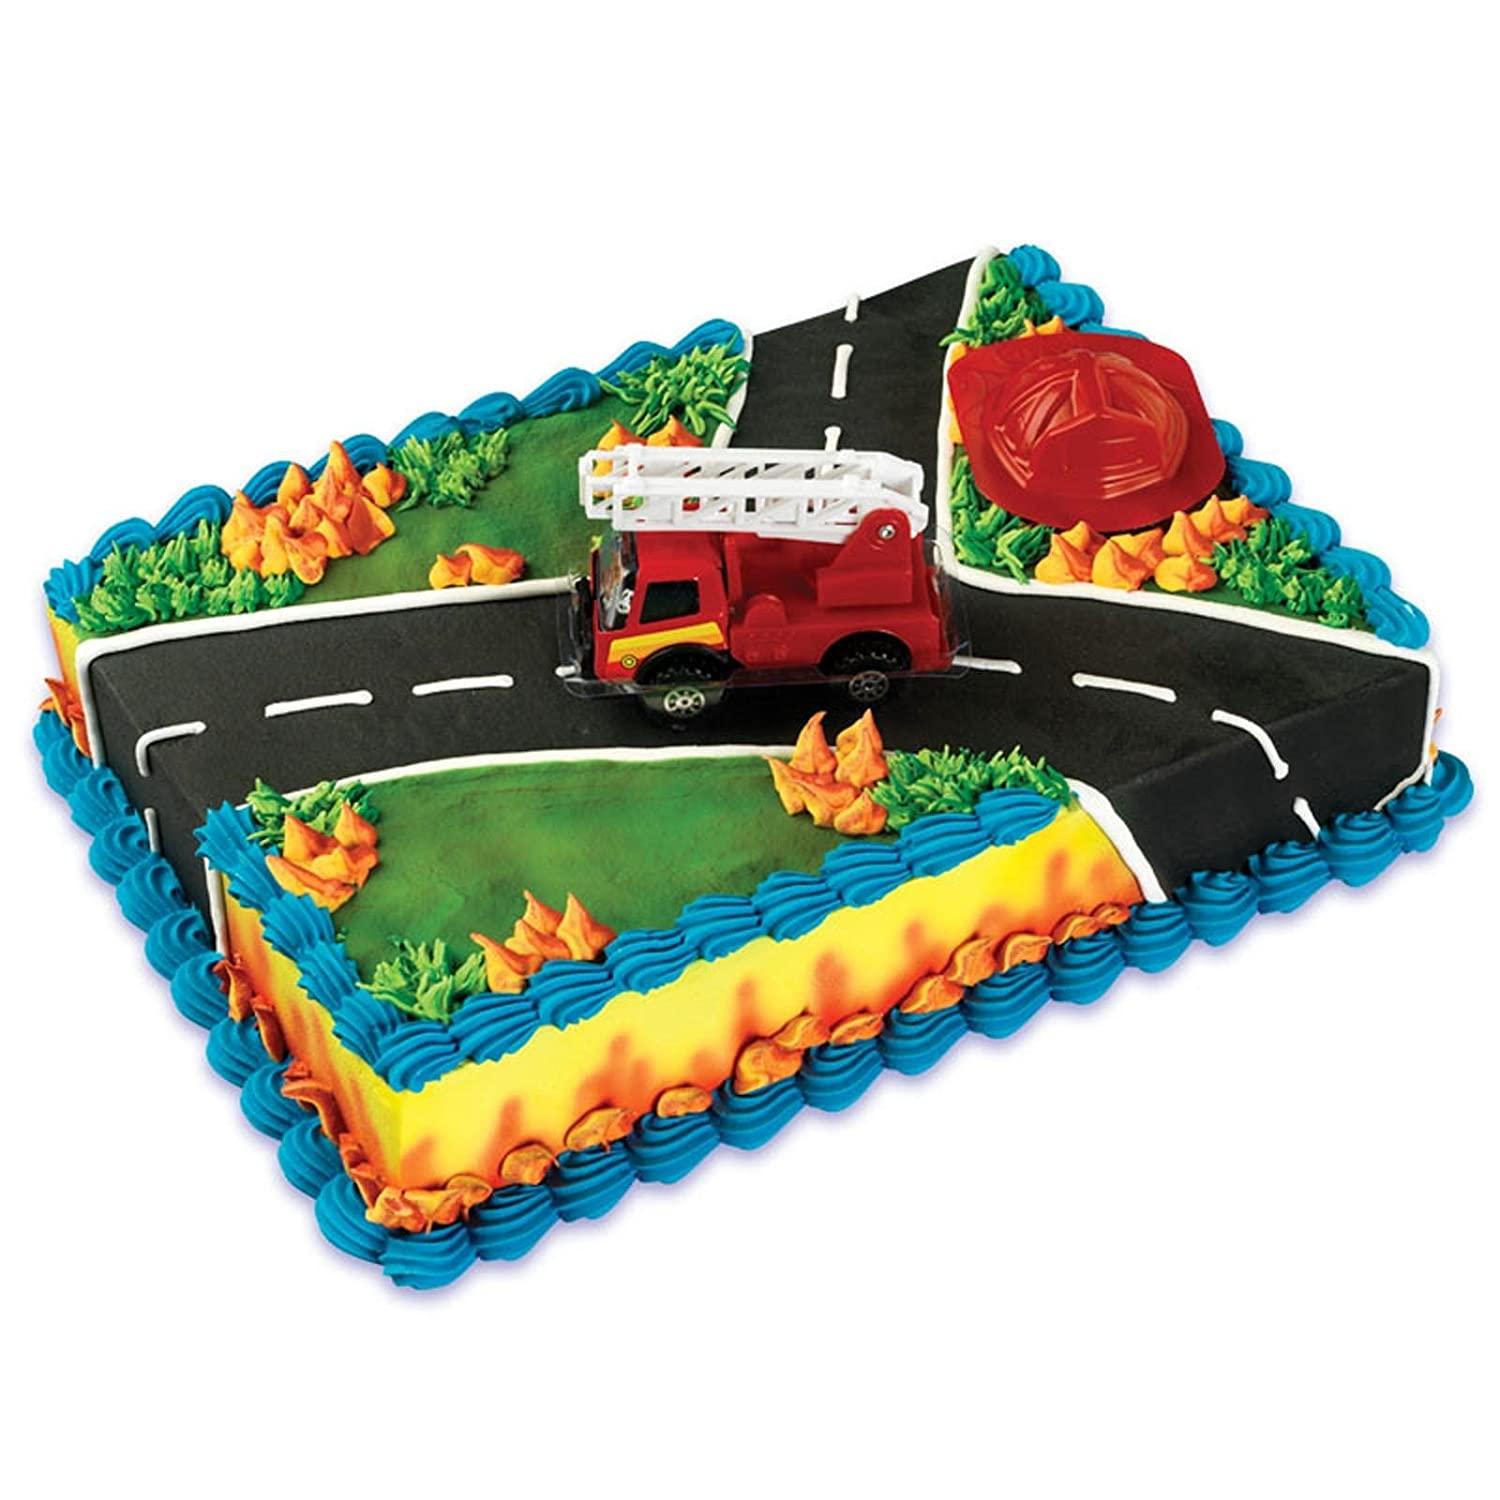 Fire Truck Rescue Cake Decoration Toppers Kit Ebay